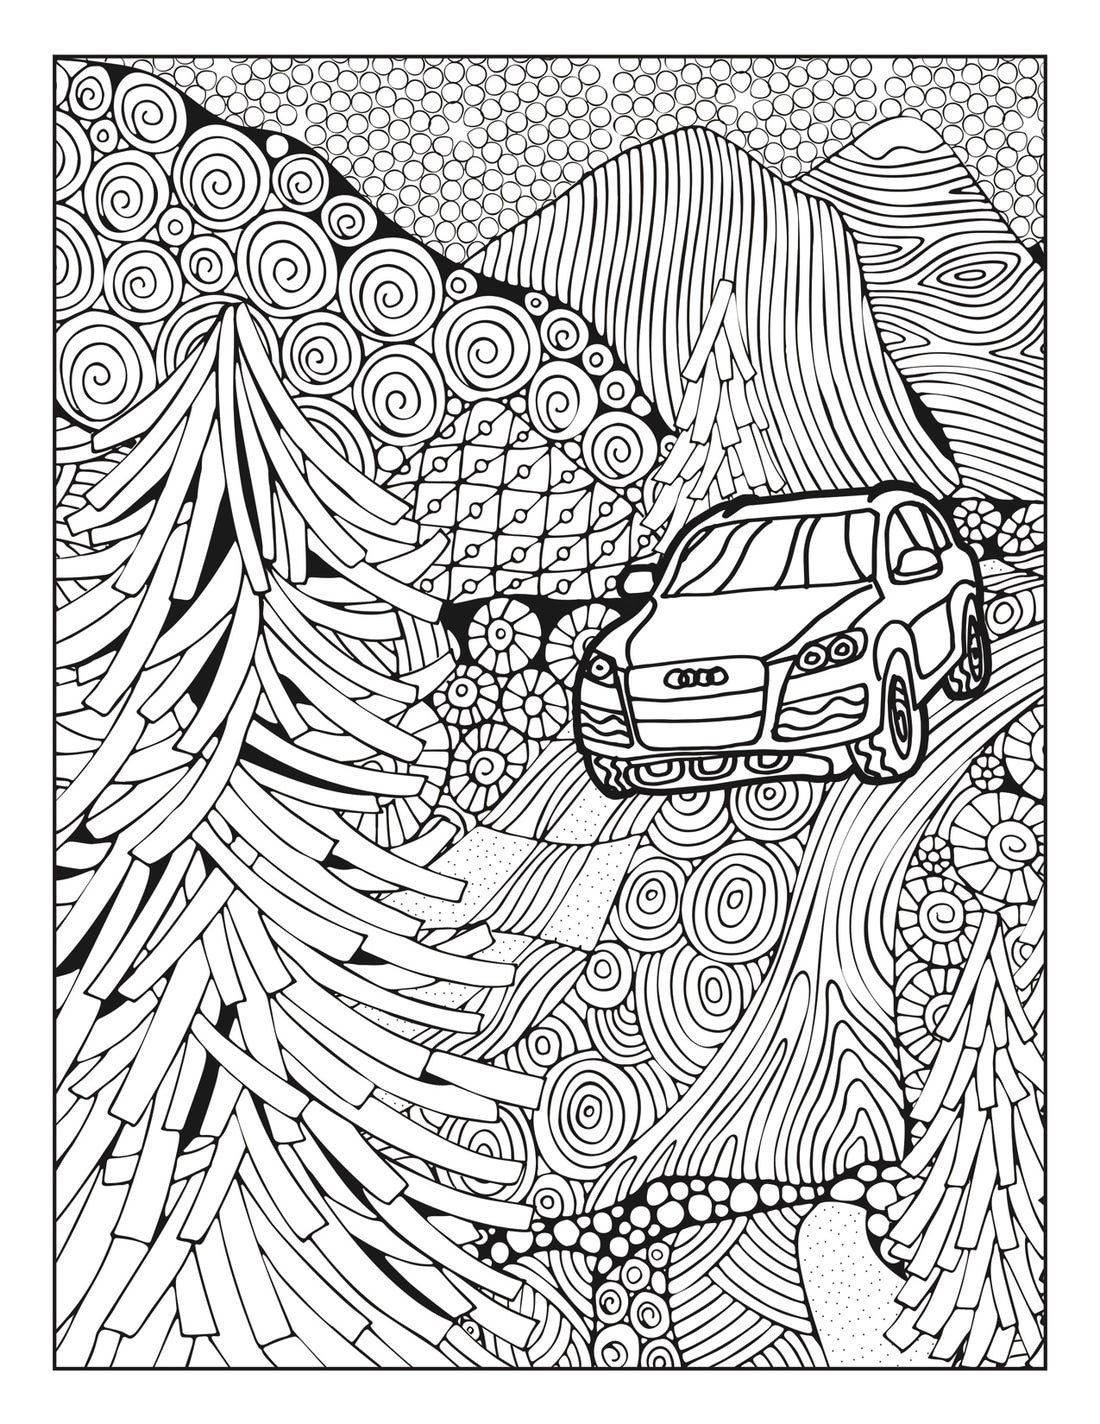 Pictures To Coloring Pages Audi And Mercedes Release Coloring Pages To Battle In 2020 Dinosaur Coloring Pages Cars Coloring Pages Coloring Book Pages